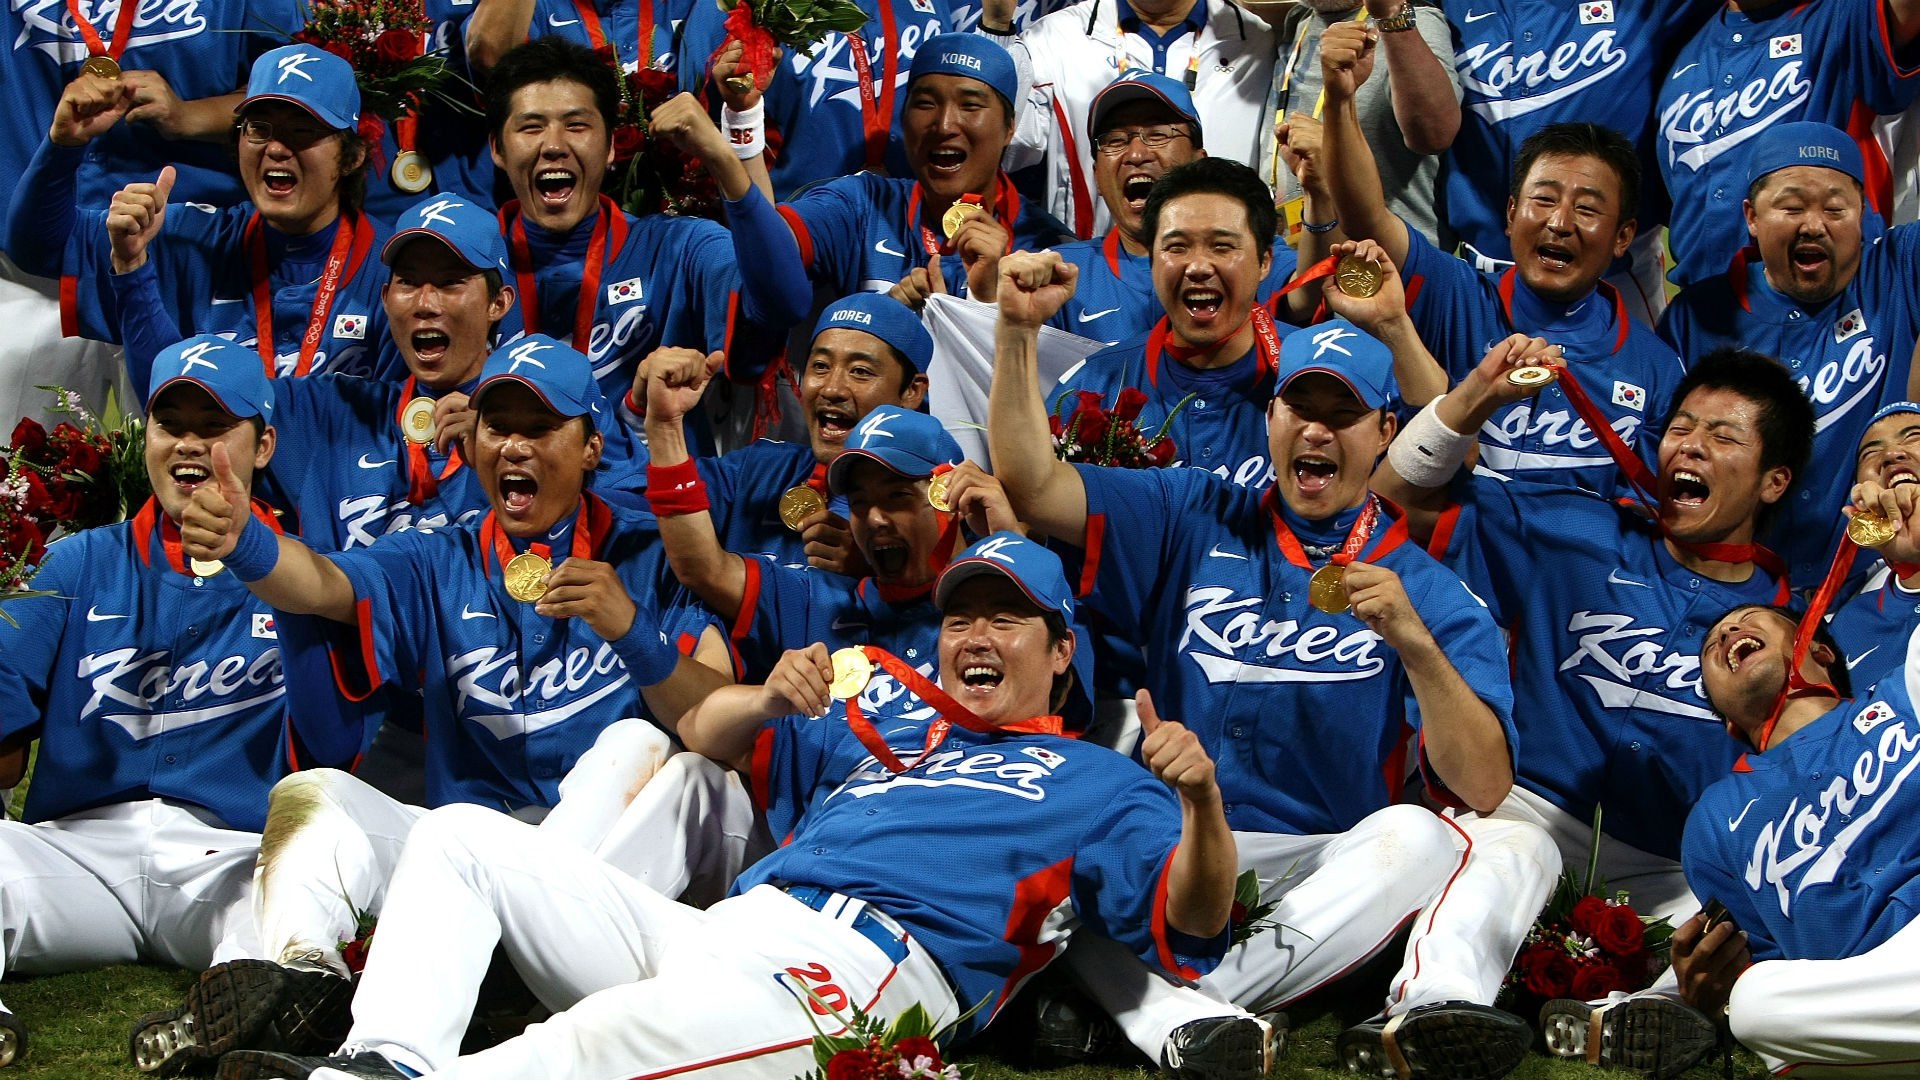 South Korea celebrates 2008 baseball gold